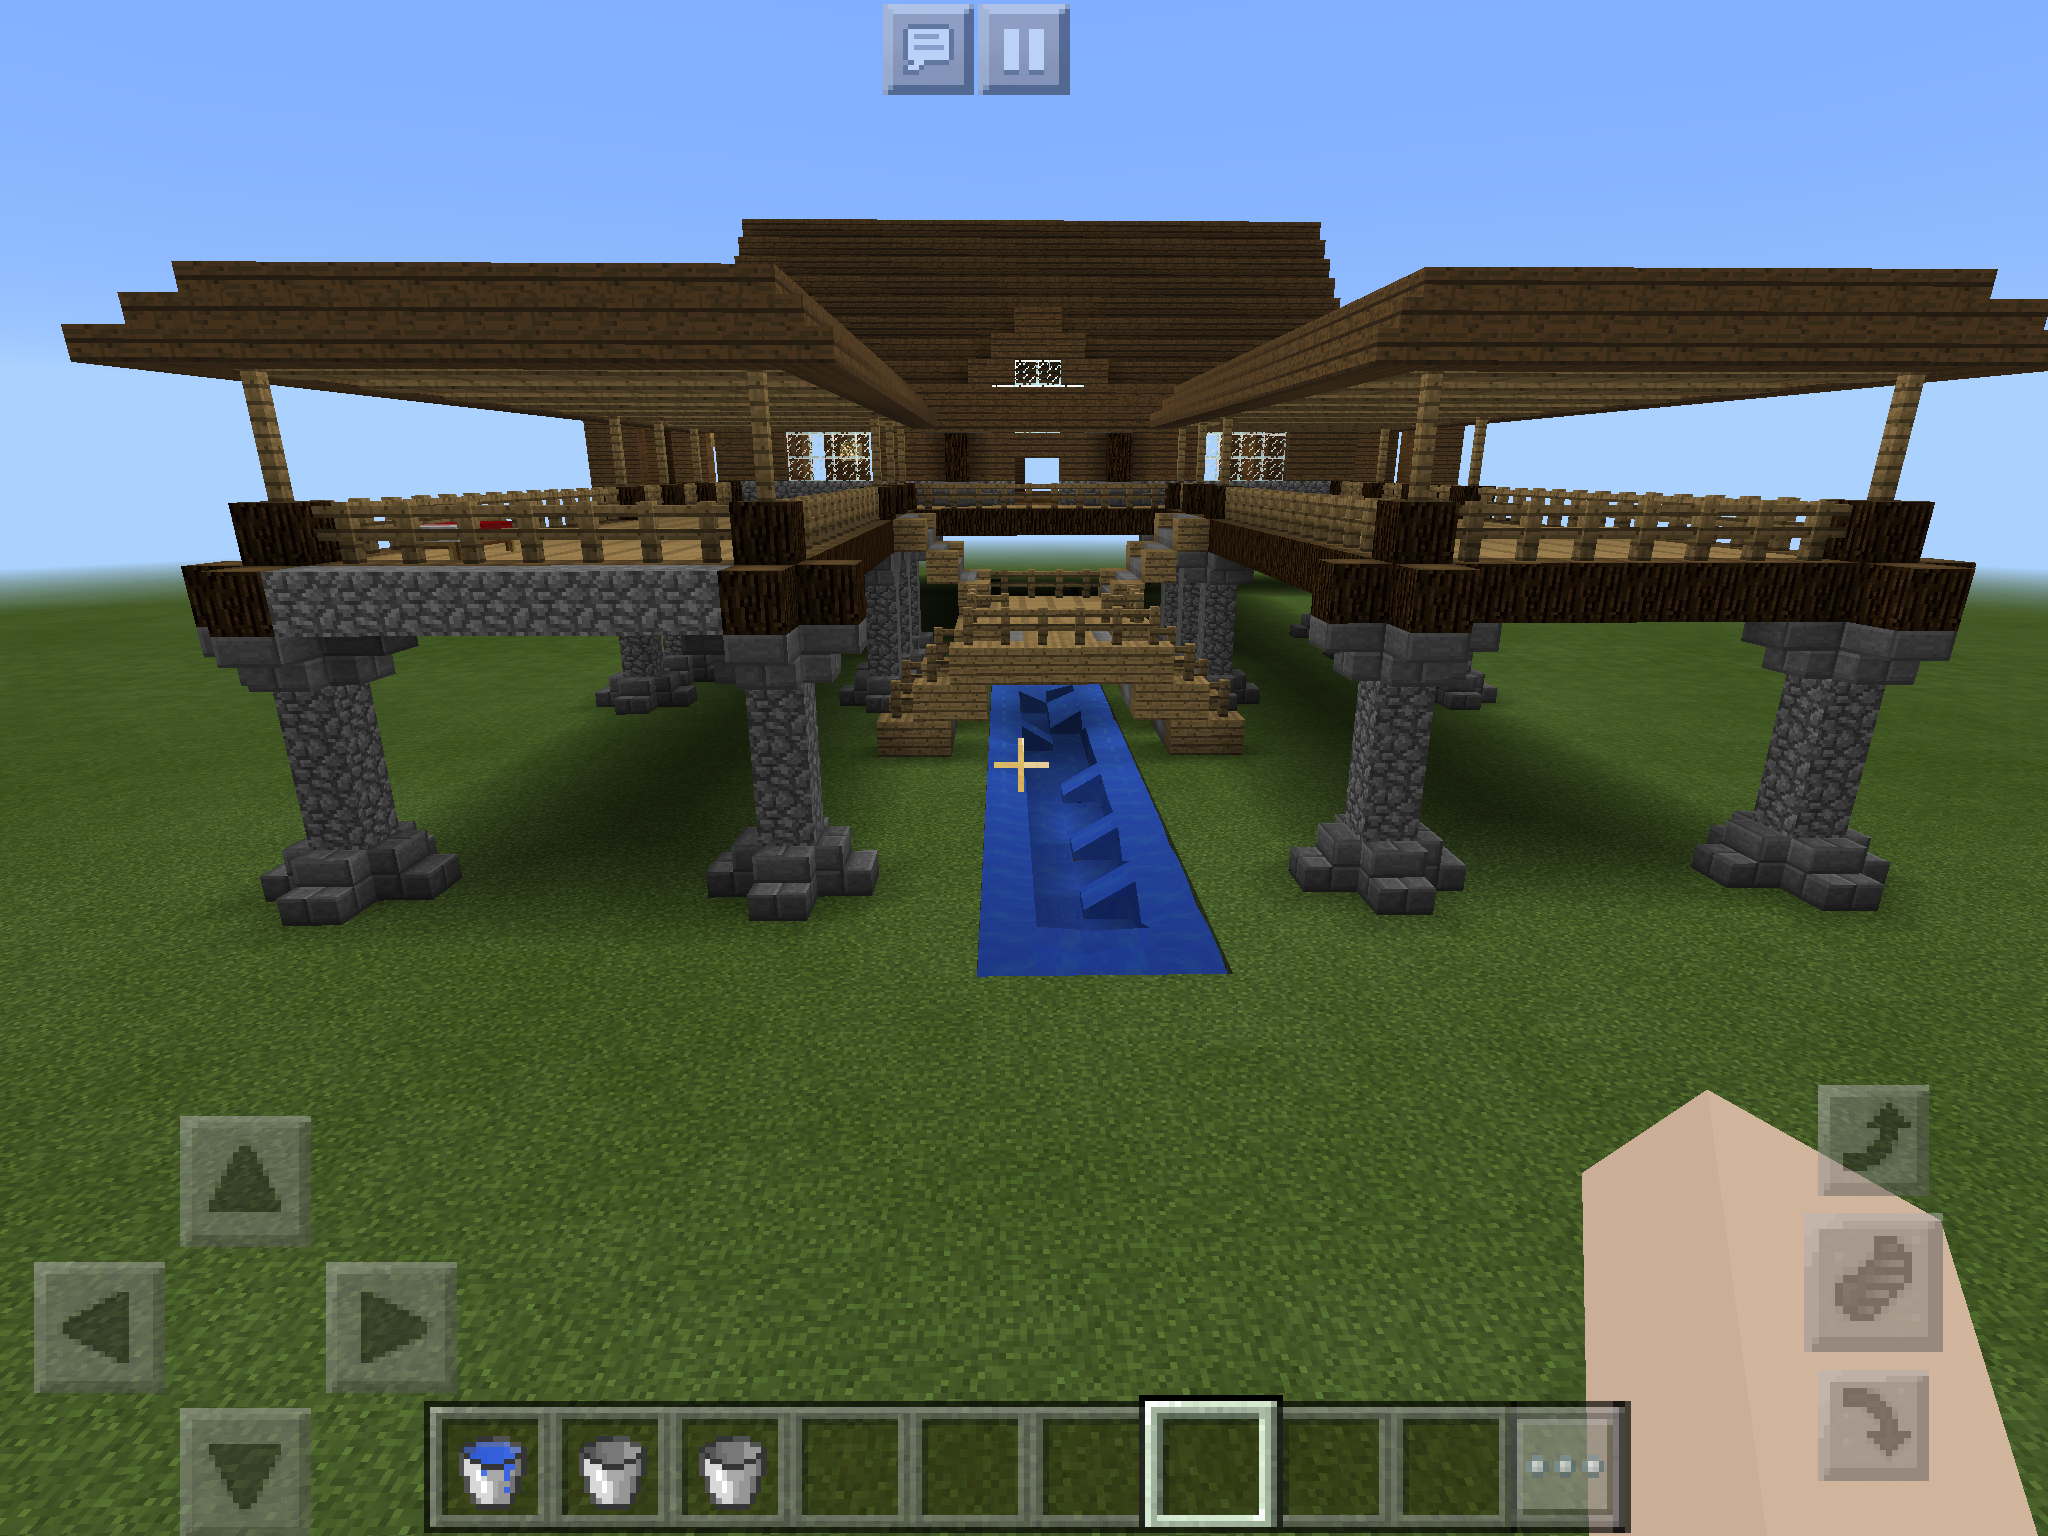 Stone Spruce Wood House It Took Me Forever To Make House In The Woods Spruce Minecraft Houses